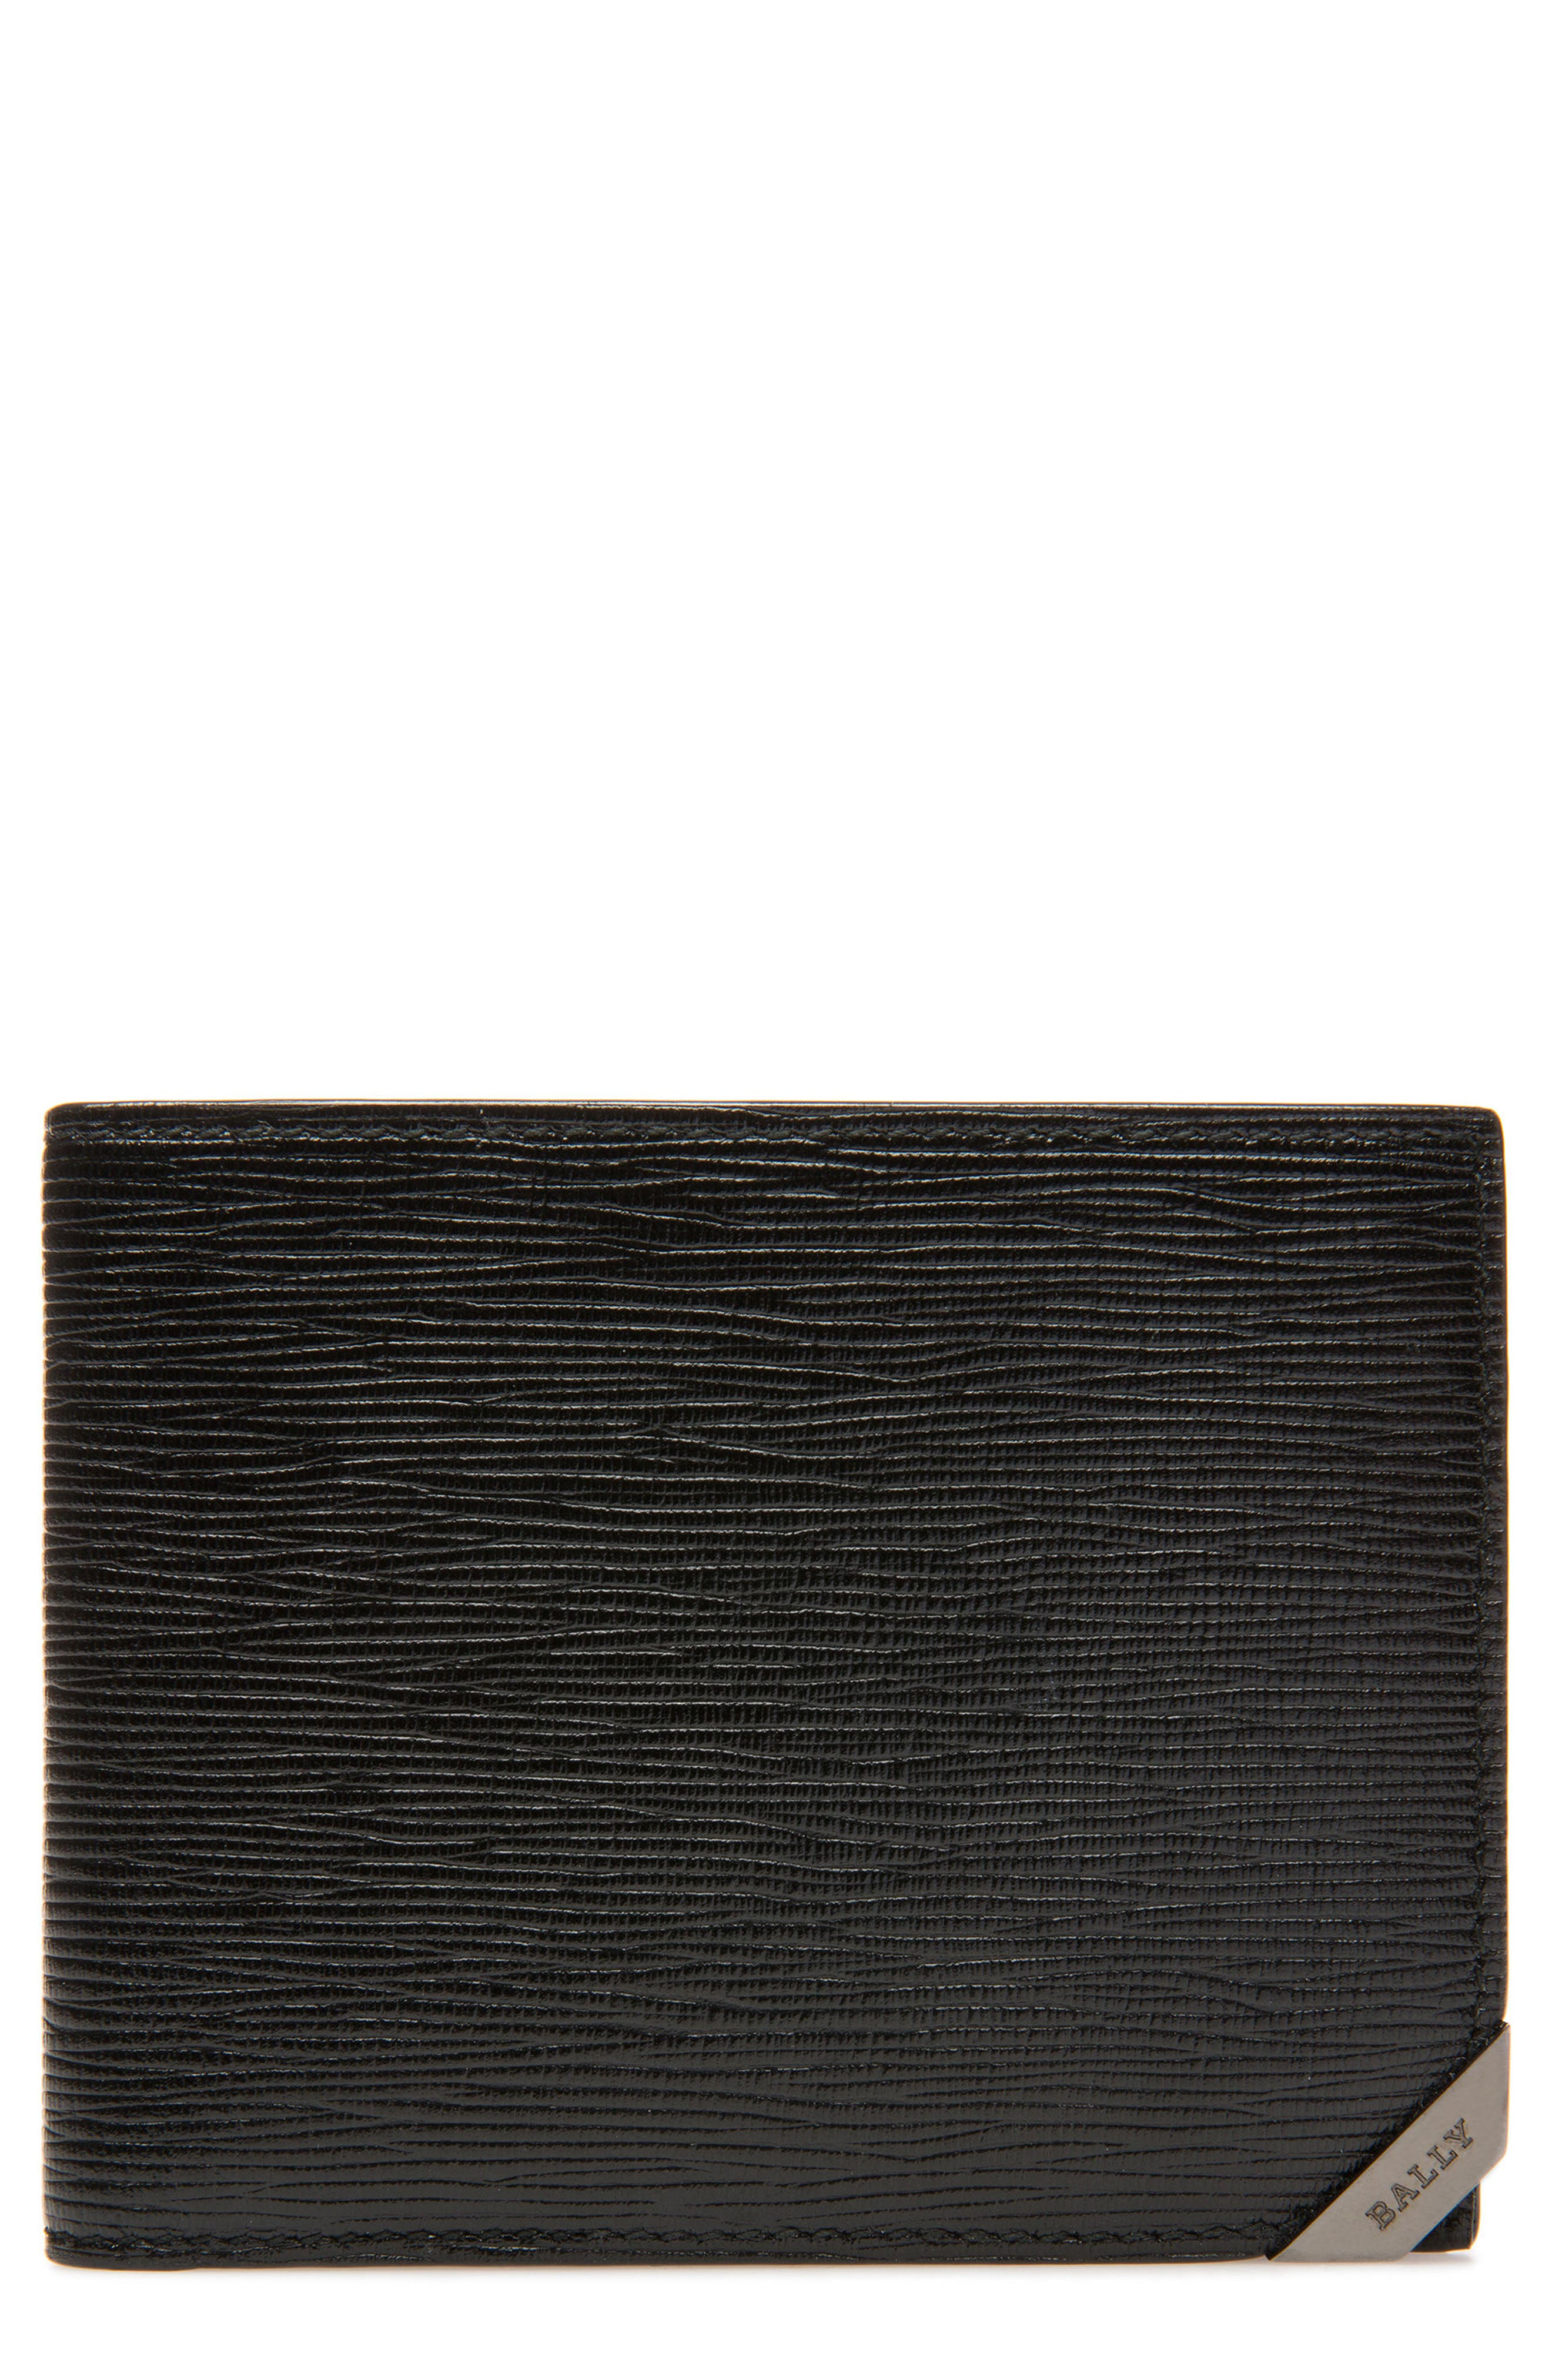 Bevye Leather Wallet,                         Main,                         color,